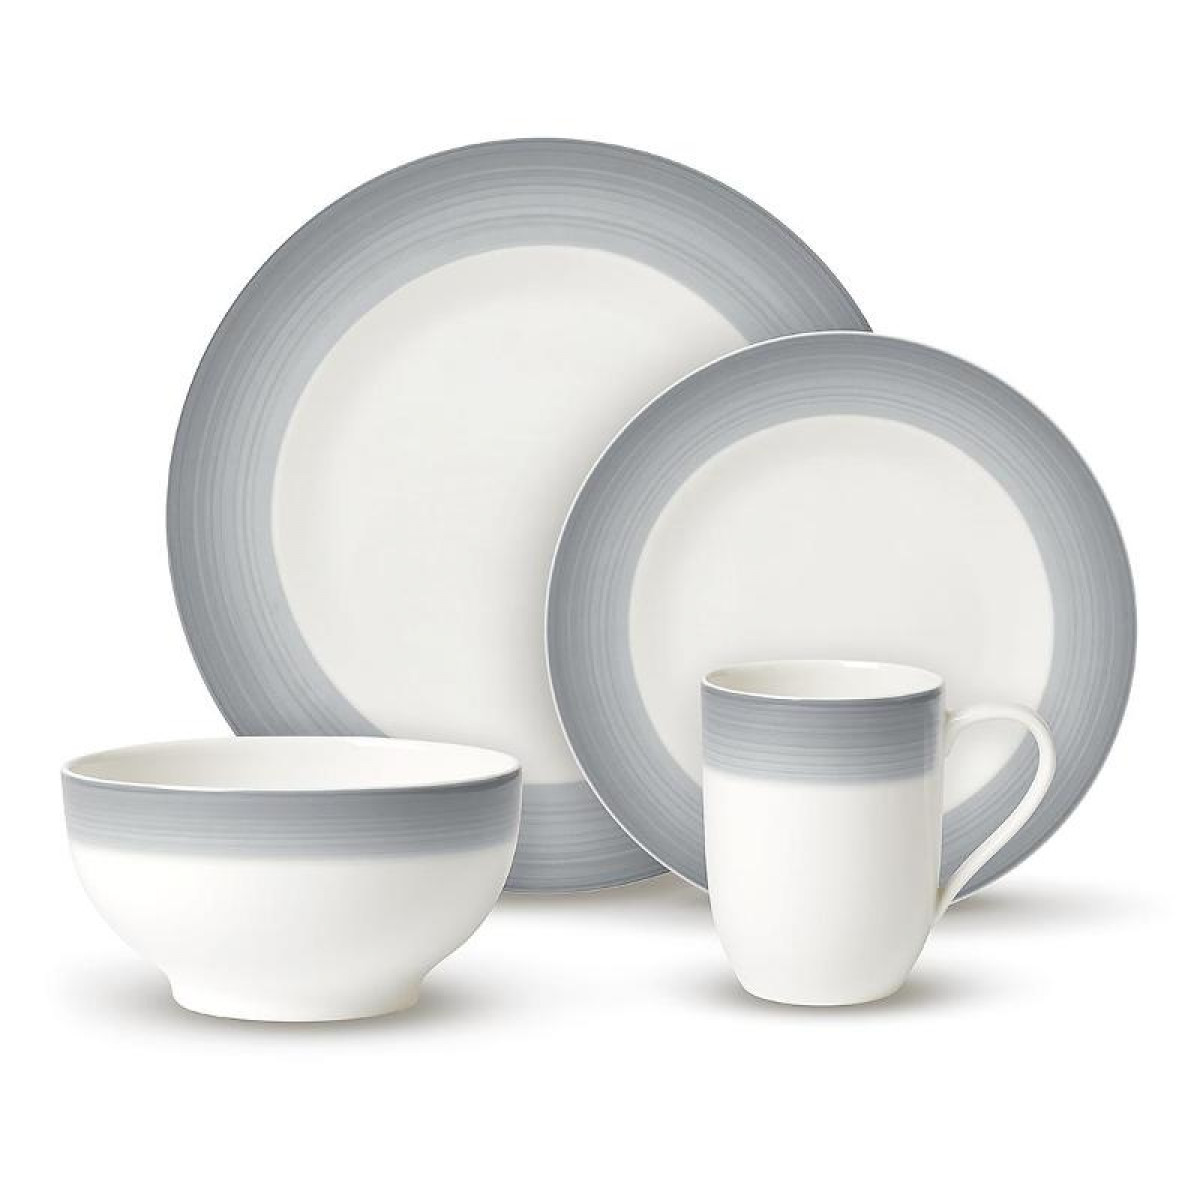 Villeroy Boch картинка Villeroy & Boch, Colourful Life - Cosy Grey Набор посуды For me & You из 8 предм. | Colourful Life